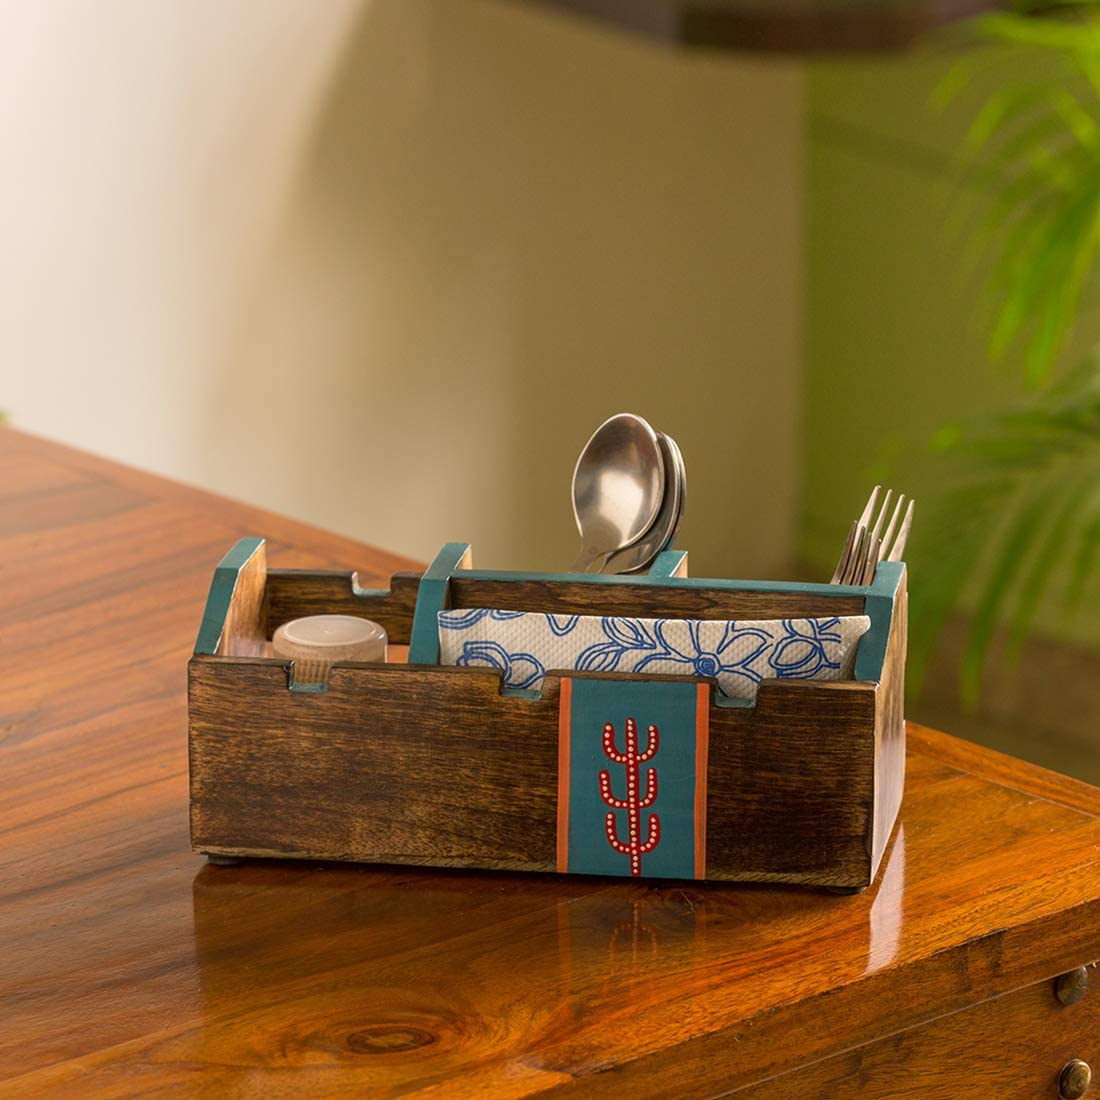 ExclusiveLane 'Oasis Omaha Mall Spaces' Hand-Painted Holder Cutlery in Price reduction Mang